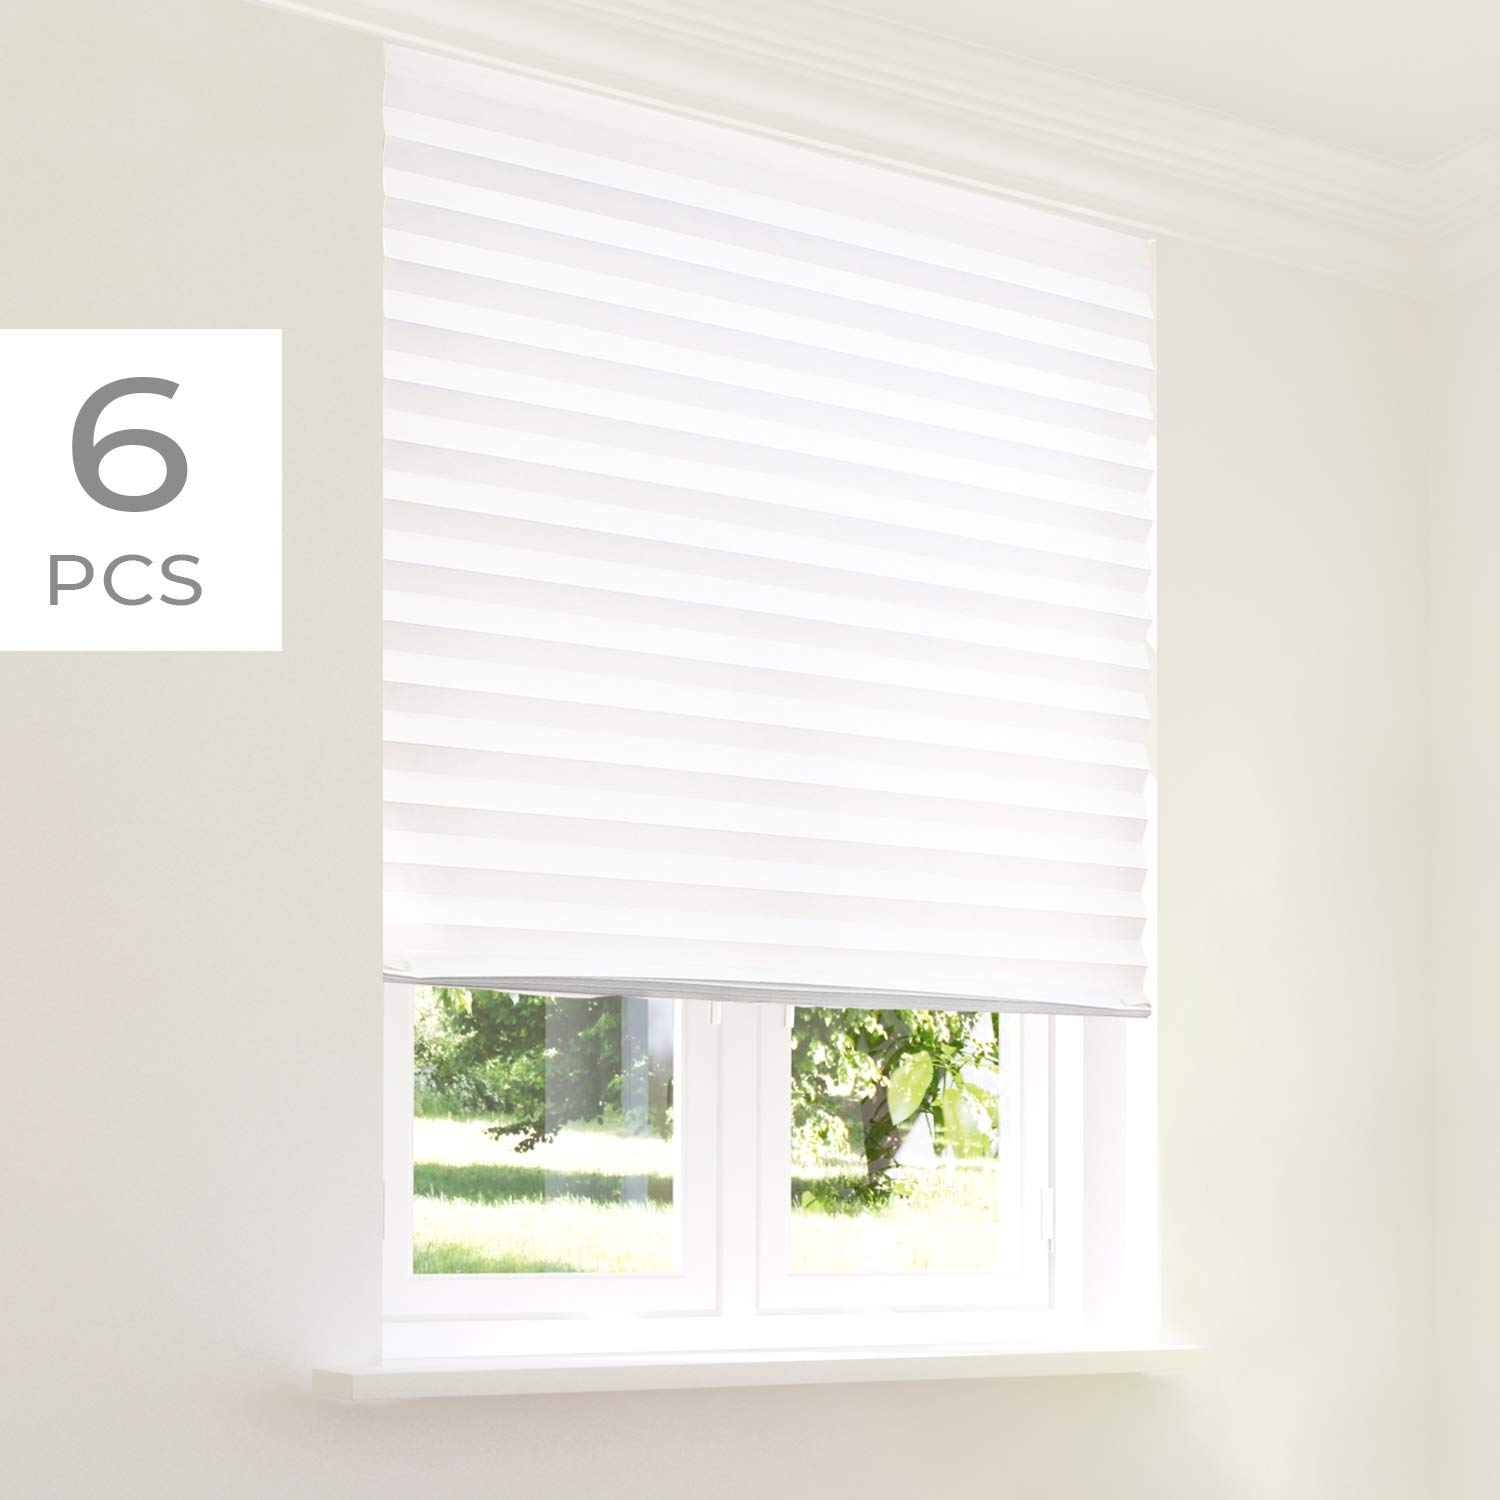 CHICOLOGY Instant Privacy Window Blind Temporary Shades (6-Pack) 36 X 72, 6 Pack (36'' W X 72'' H), Refresh White (Privacy & Light Filtering) by CHICOLOGY